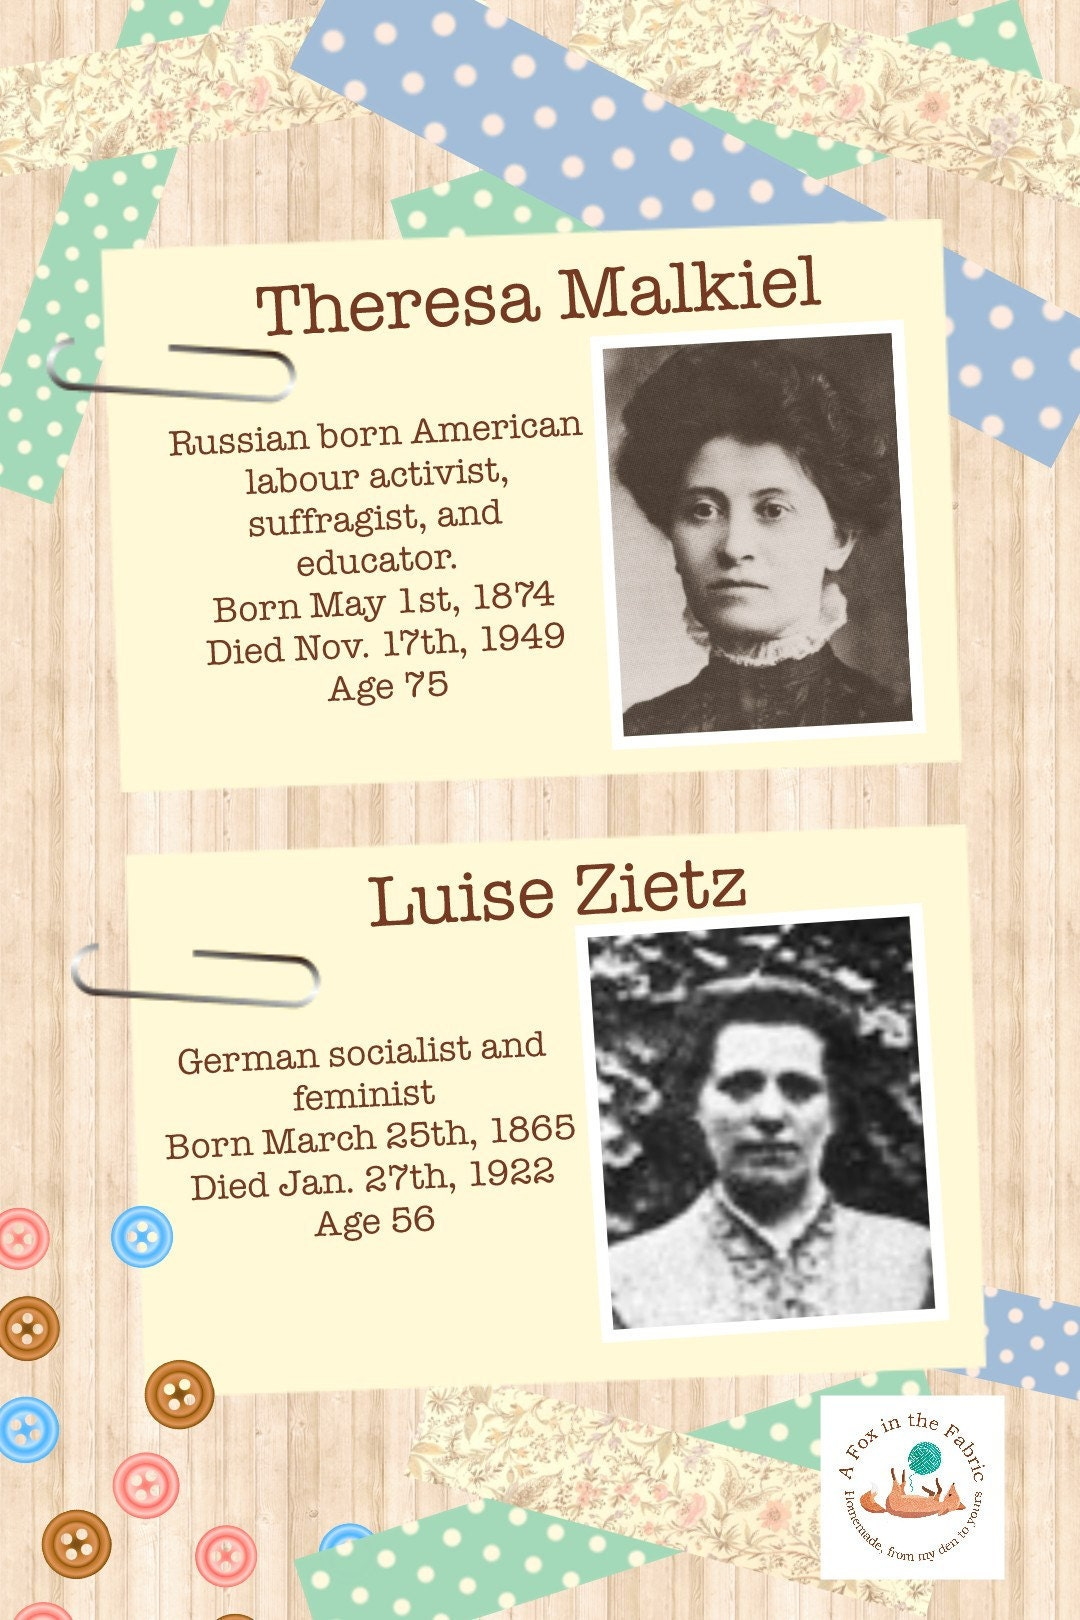 Theresa Malkiel and Luise Zietz, founders or International Womens Day